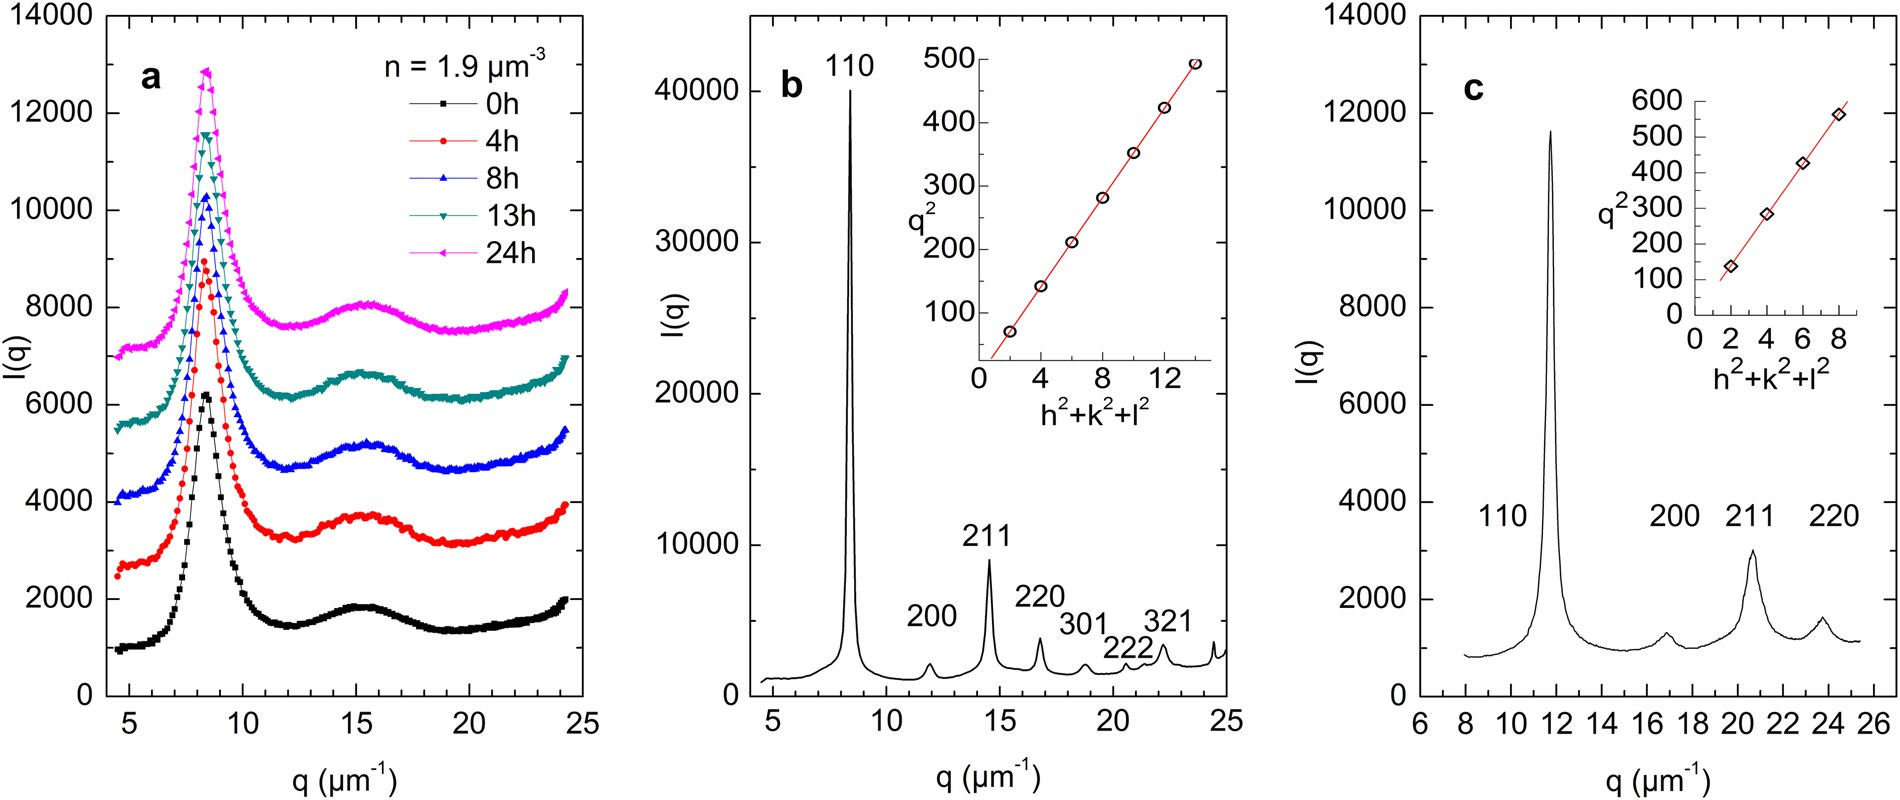 Formation of a transient amorphous solid in low density